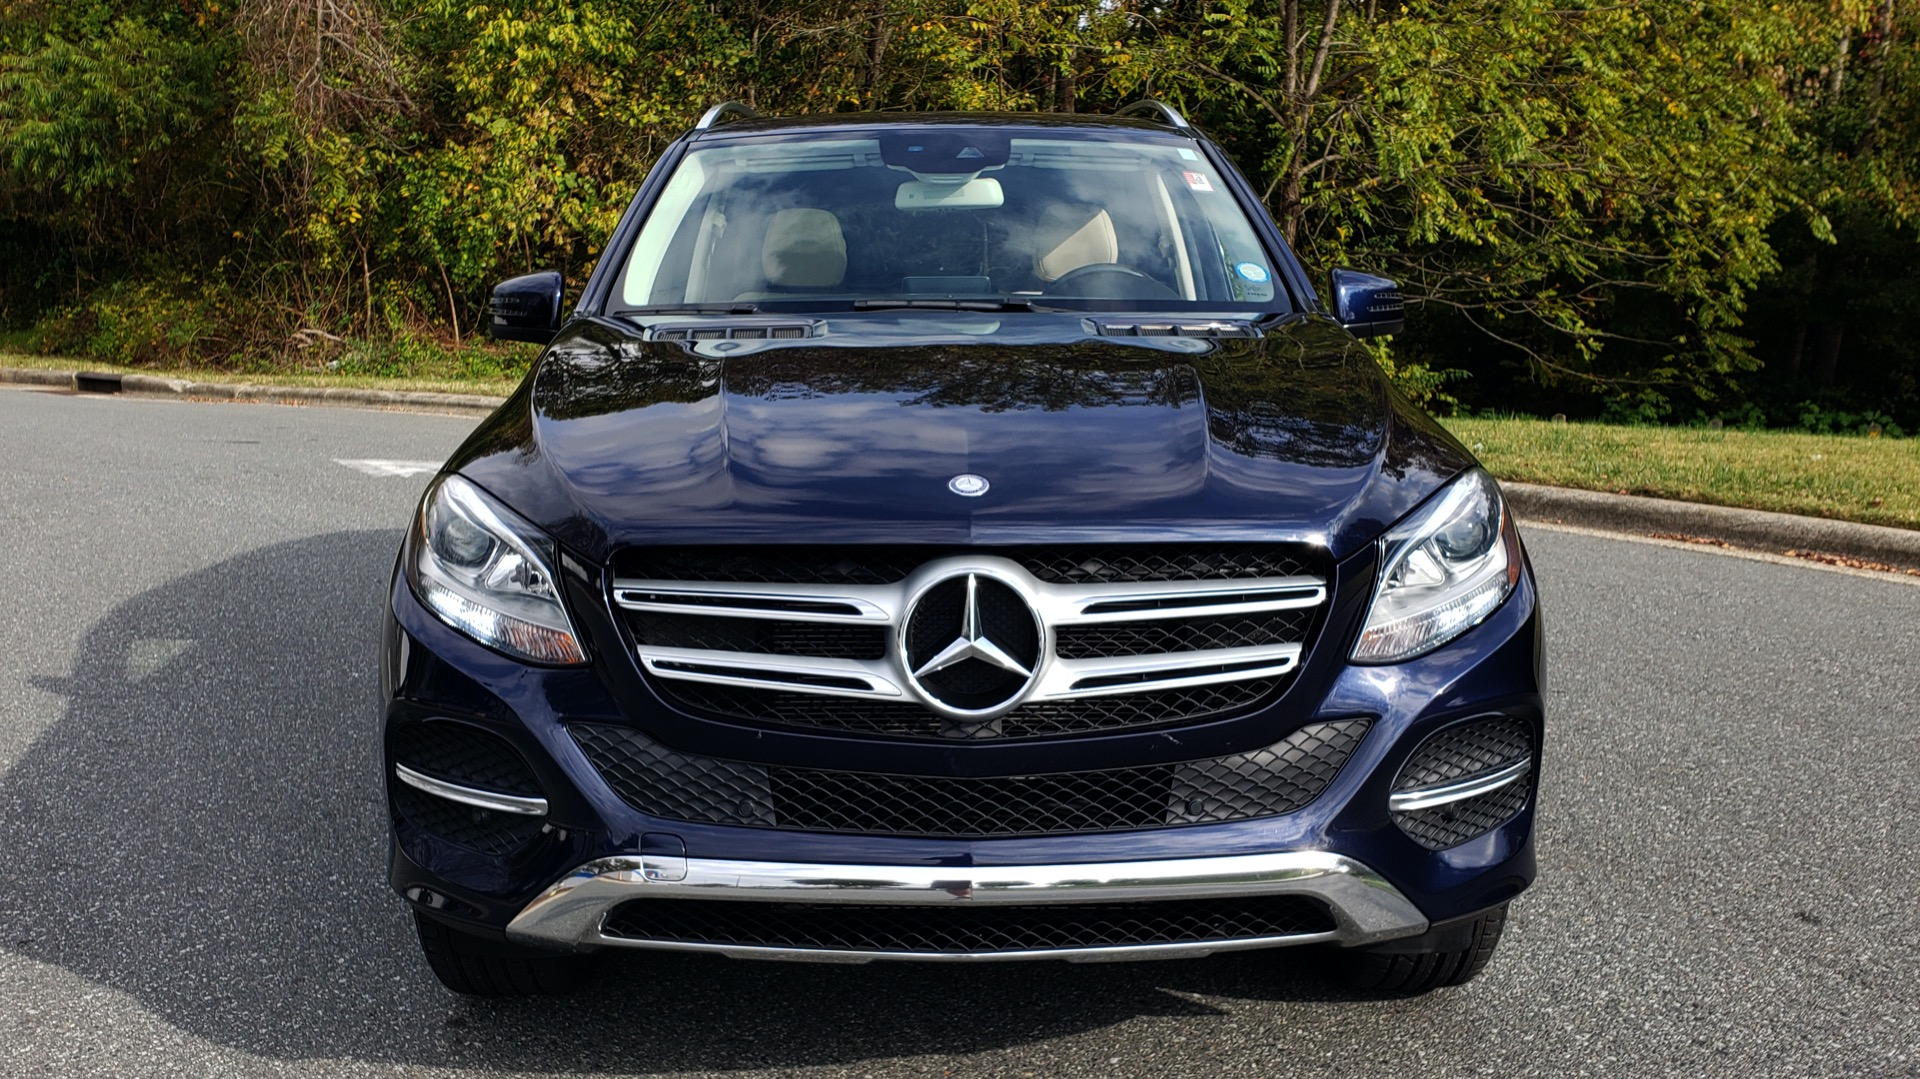 Used 2016 Mercedes-Benz GLE 350 PREMIUM / NAV / SUNROOF / BACK-UP CAMERA / LANE TRACKING for sale Sold at Formula Imports in Charlotte NC 28227 28